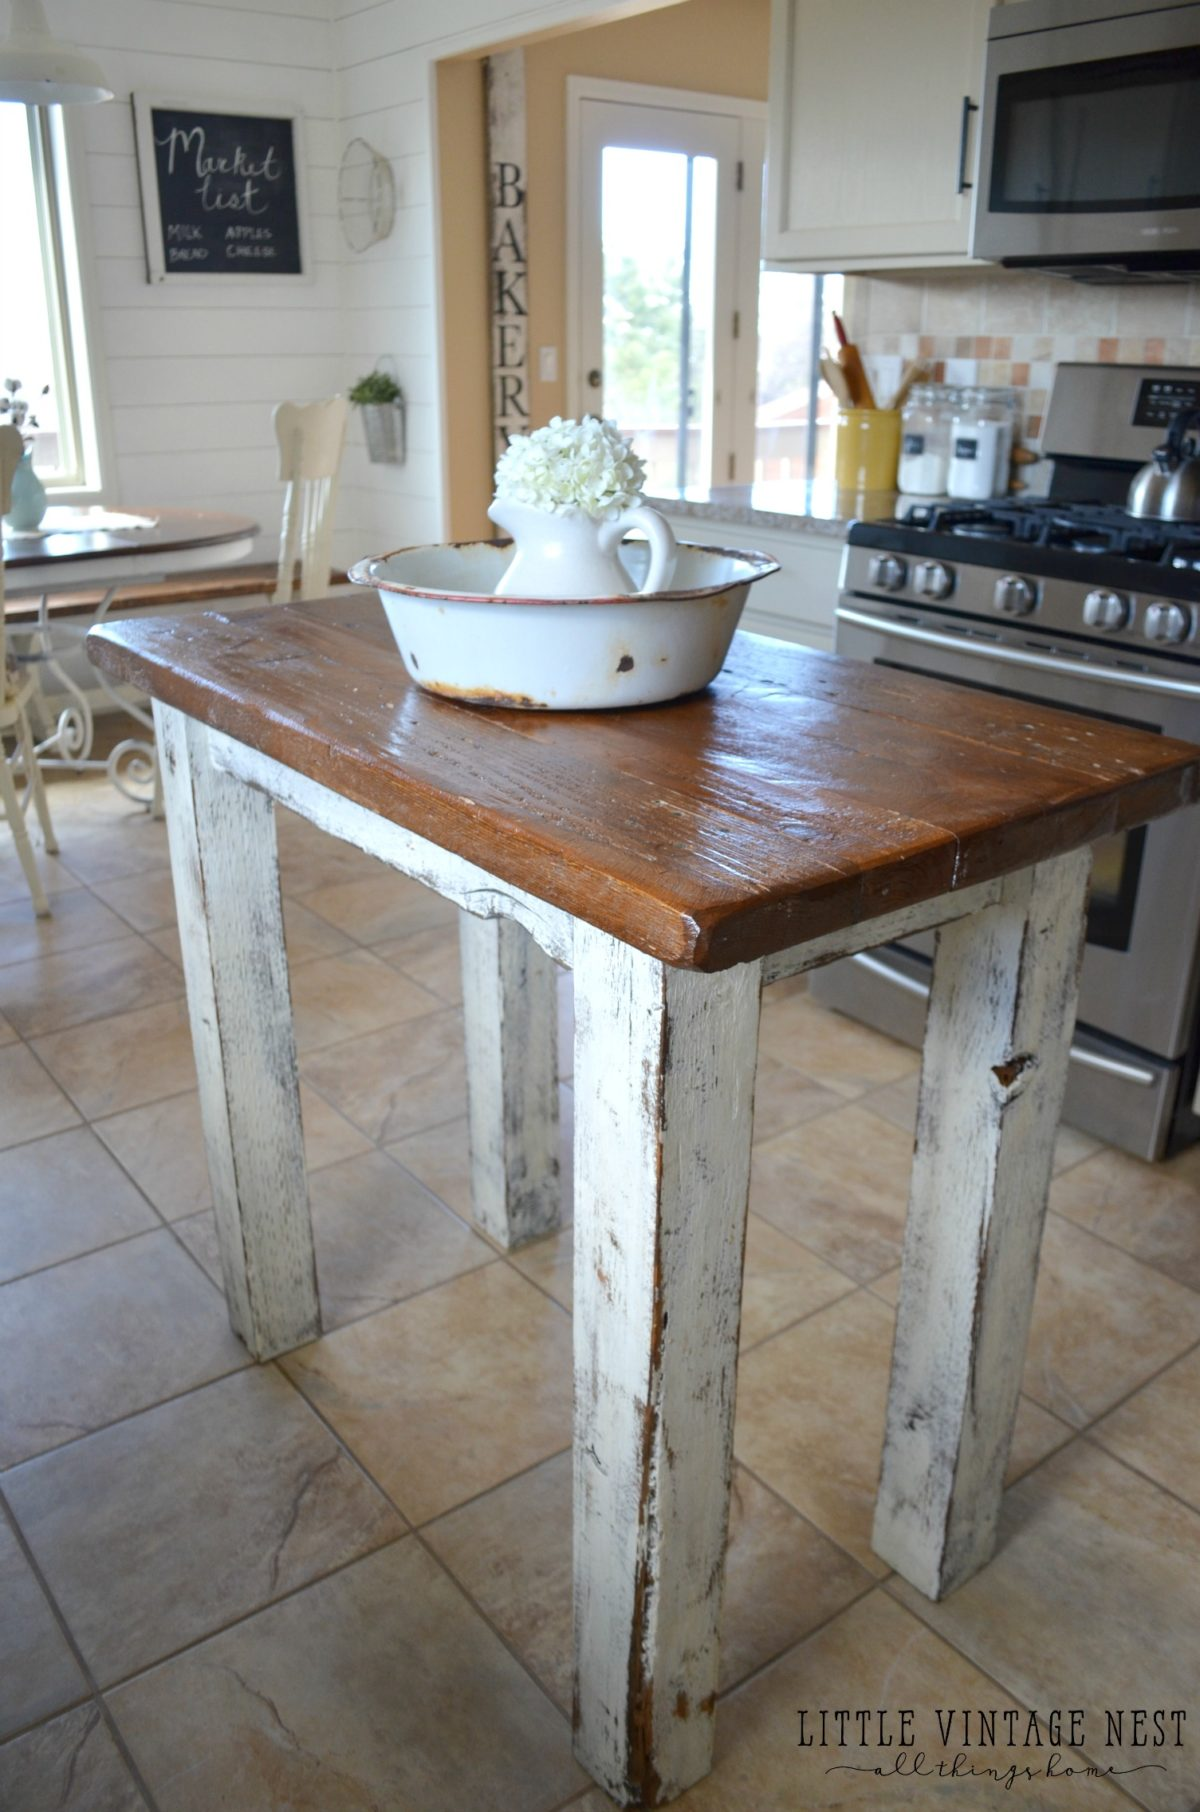 Rustic farmhouse style kitchen island made from reclaimed barn wood.